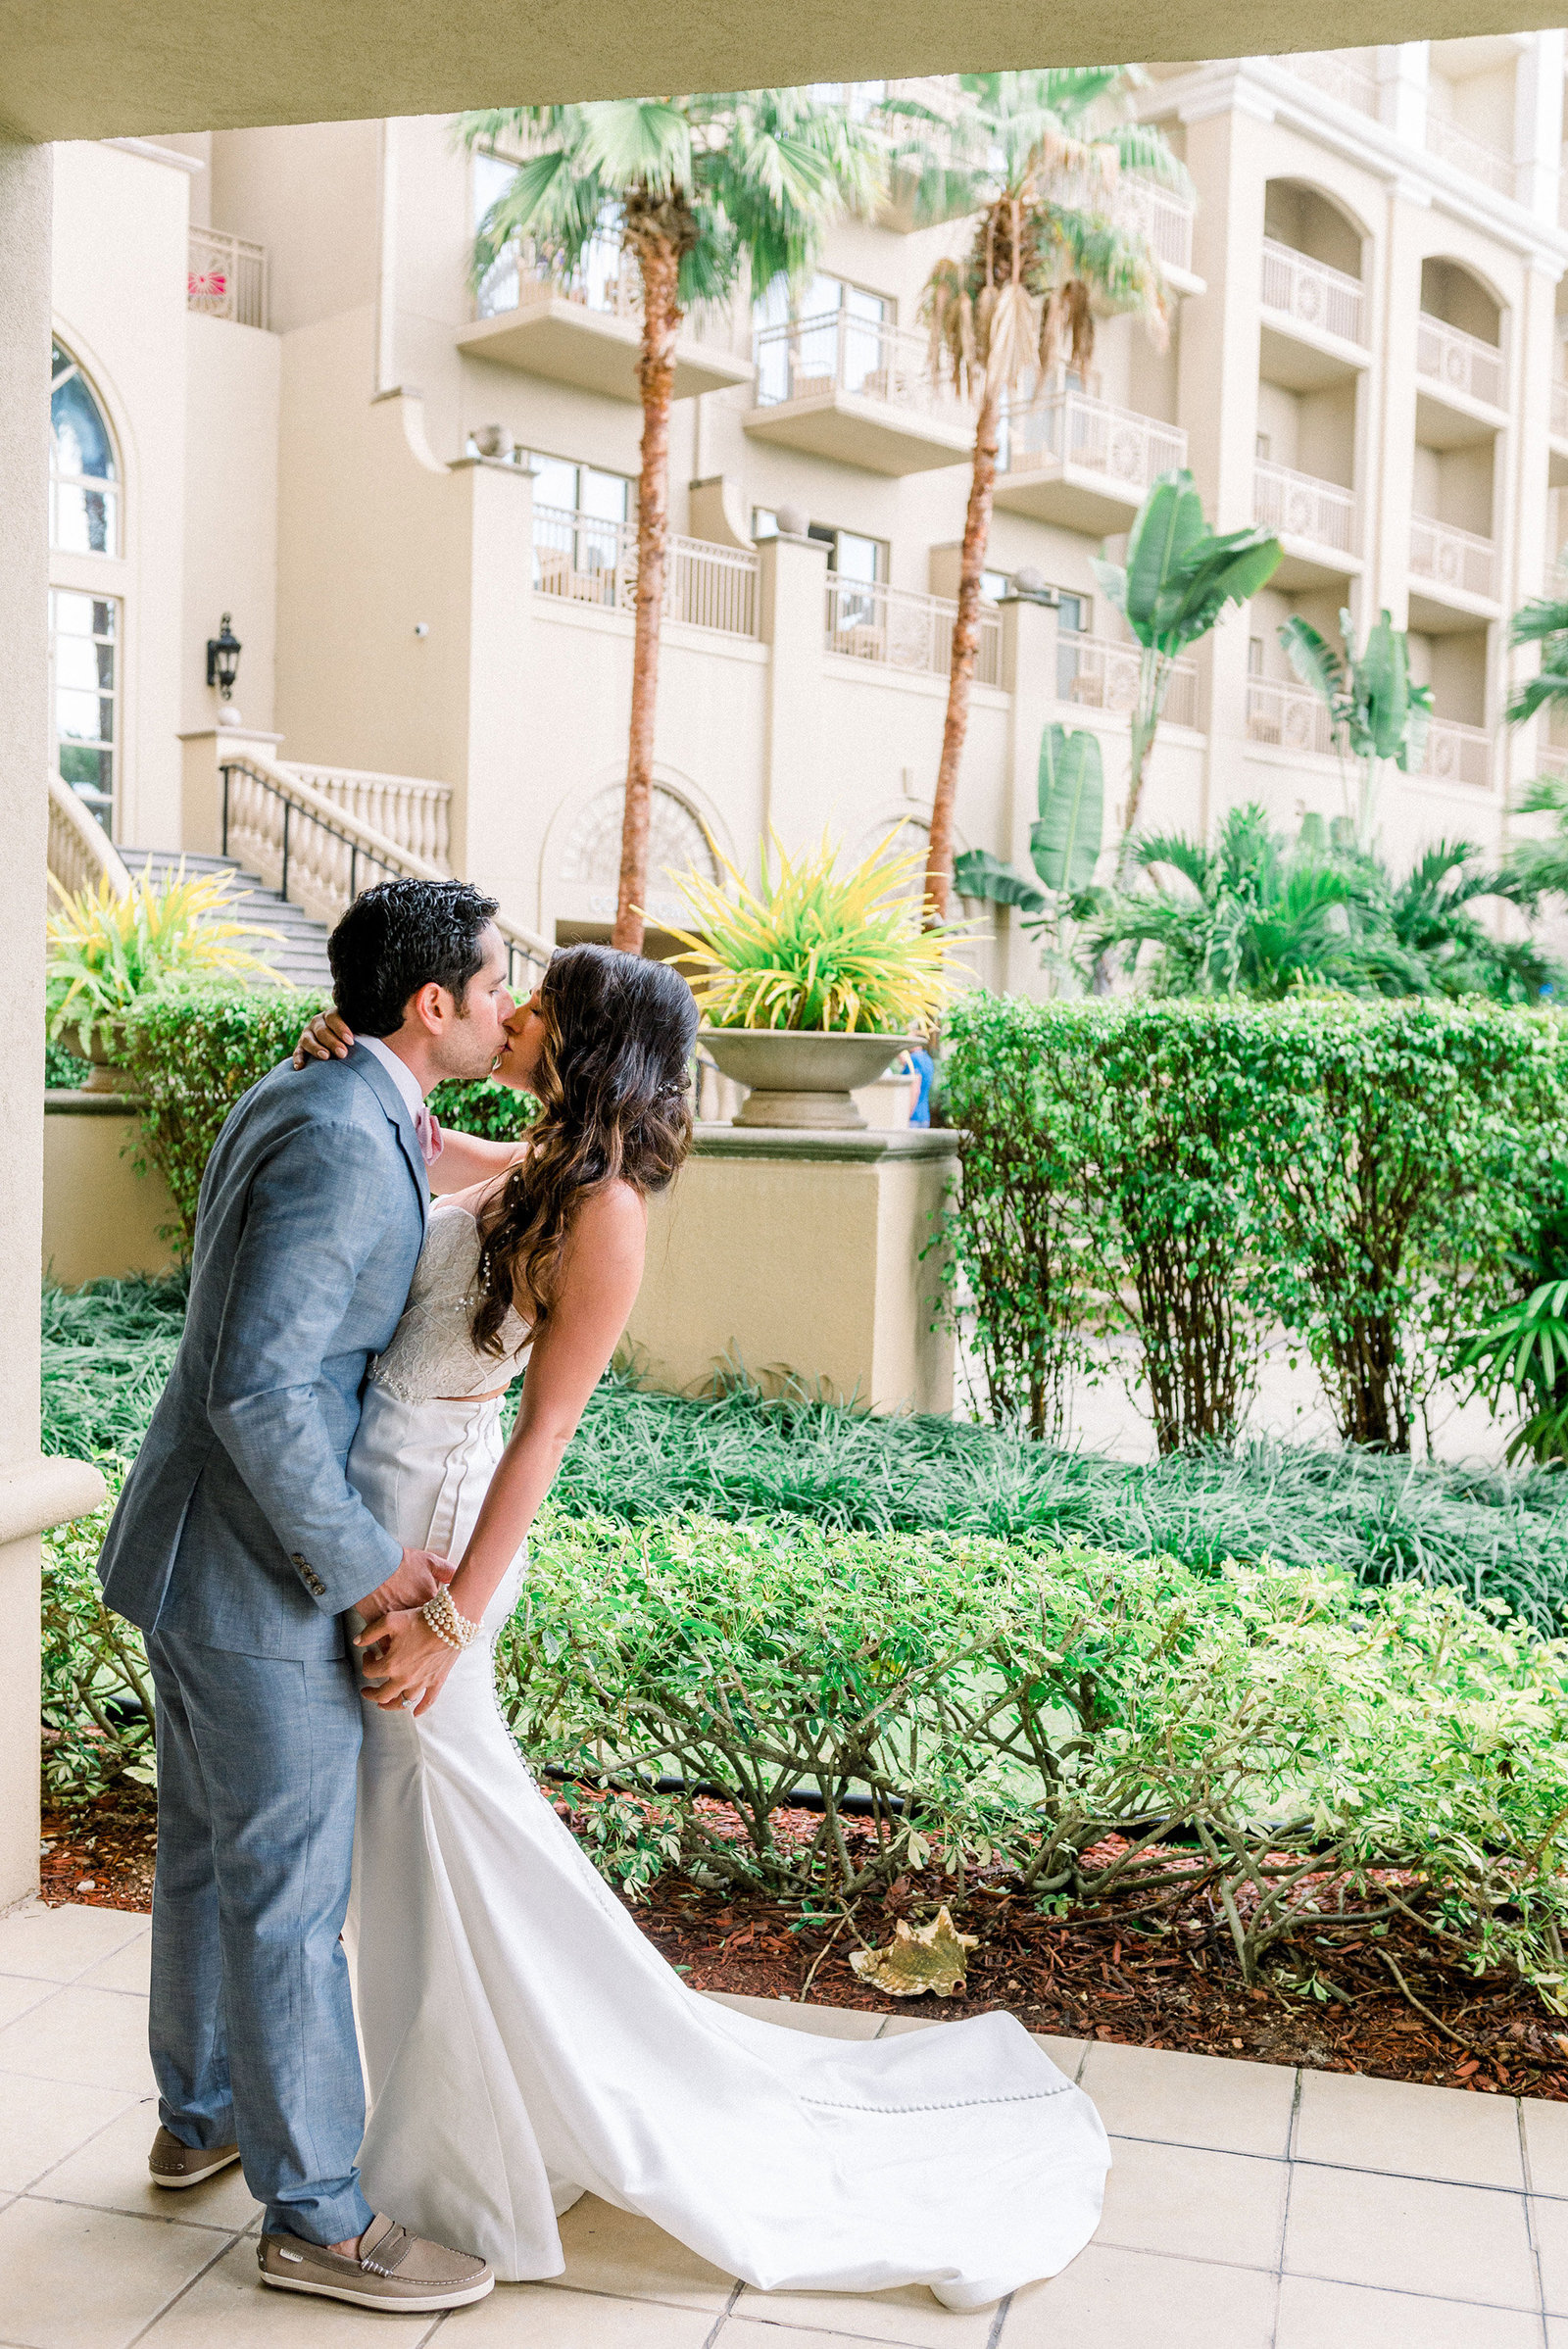 20180512-Pura-Soul-Photo-Ritz-Grand-Cayman-Wedding-39